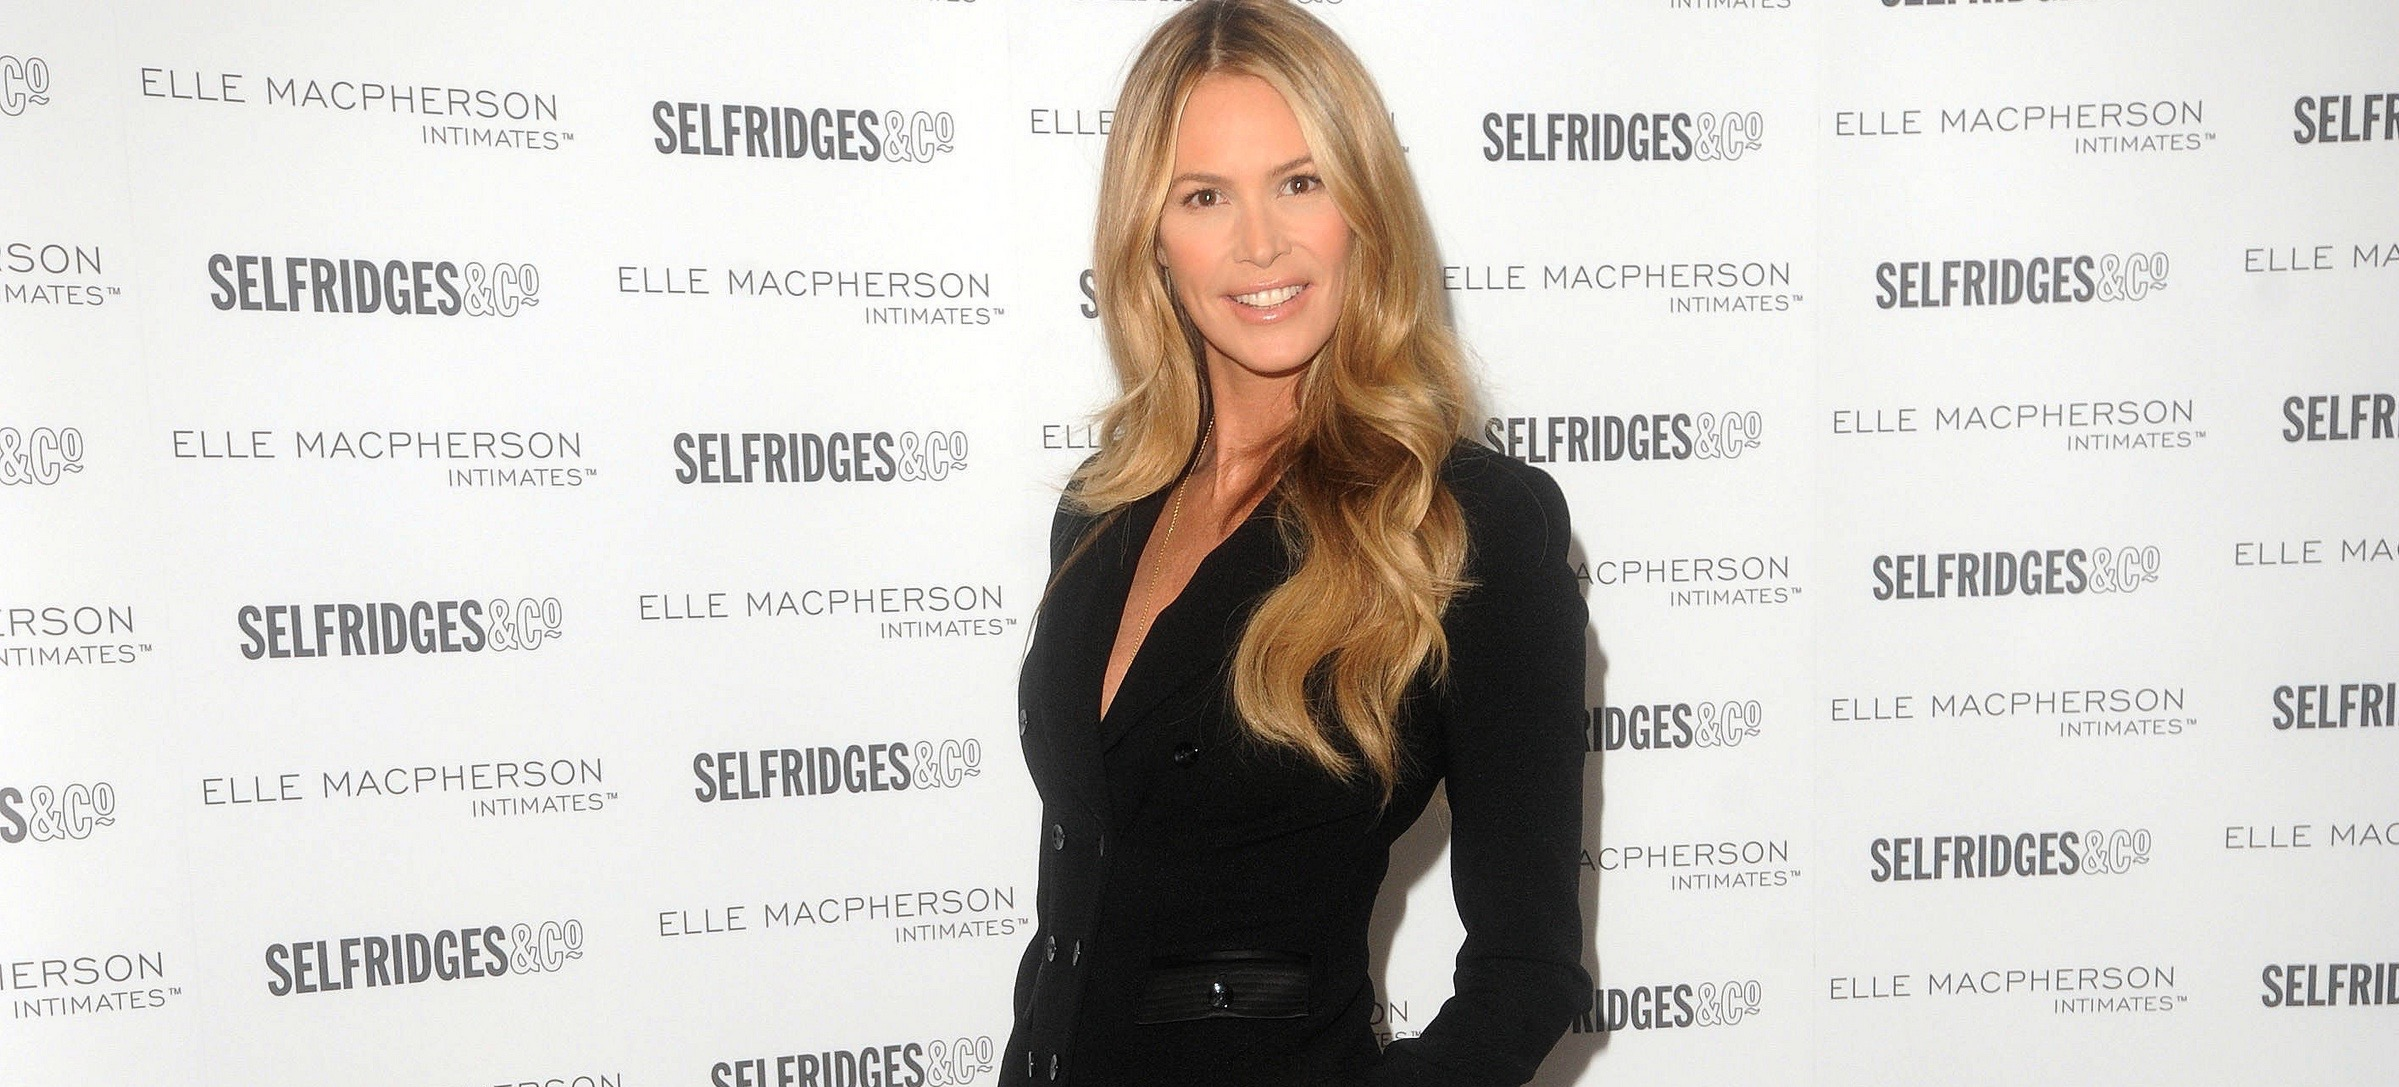 14 Gym-Free Fitspirations with Elle Macpherson